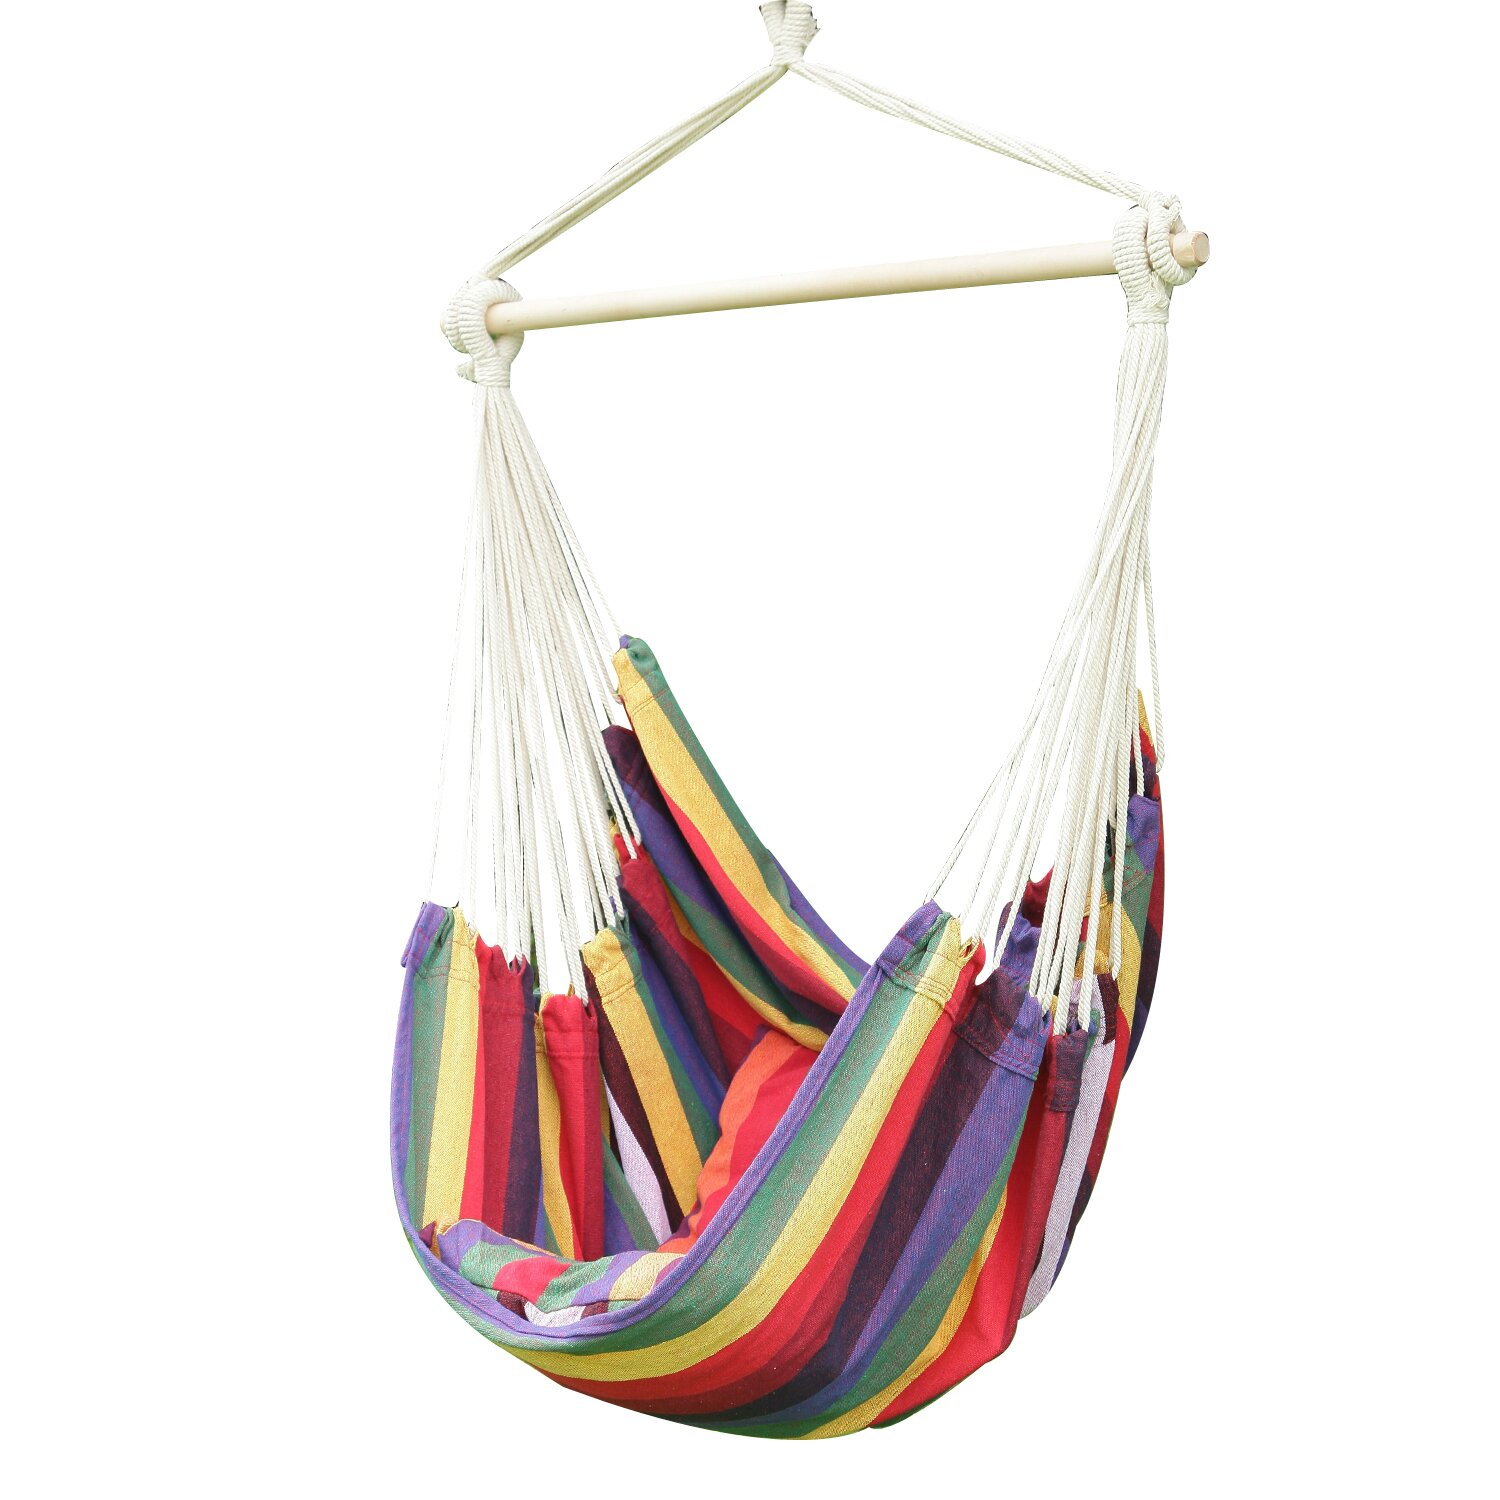 AdecoTrading Tree Hanging Suspended Indoor/Outdoor Hammock Chair with ...